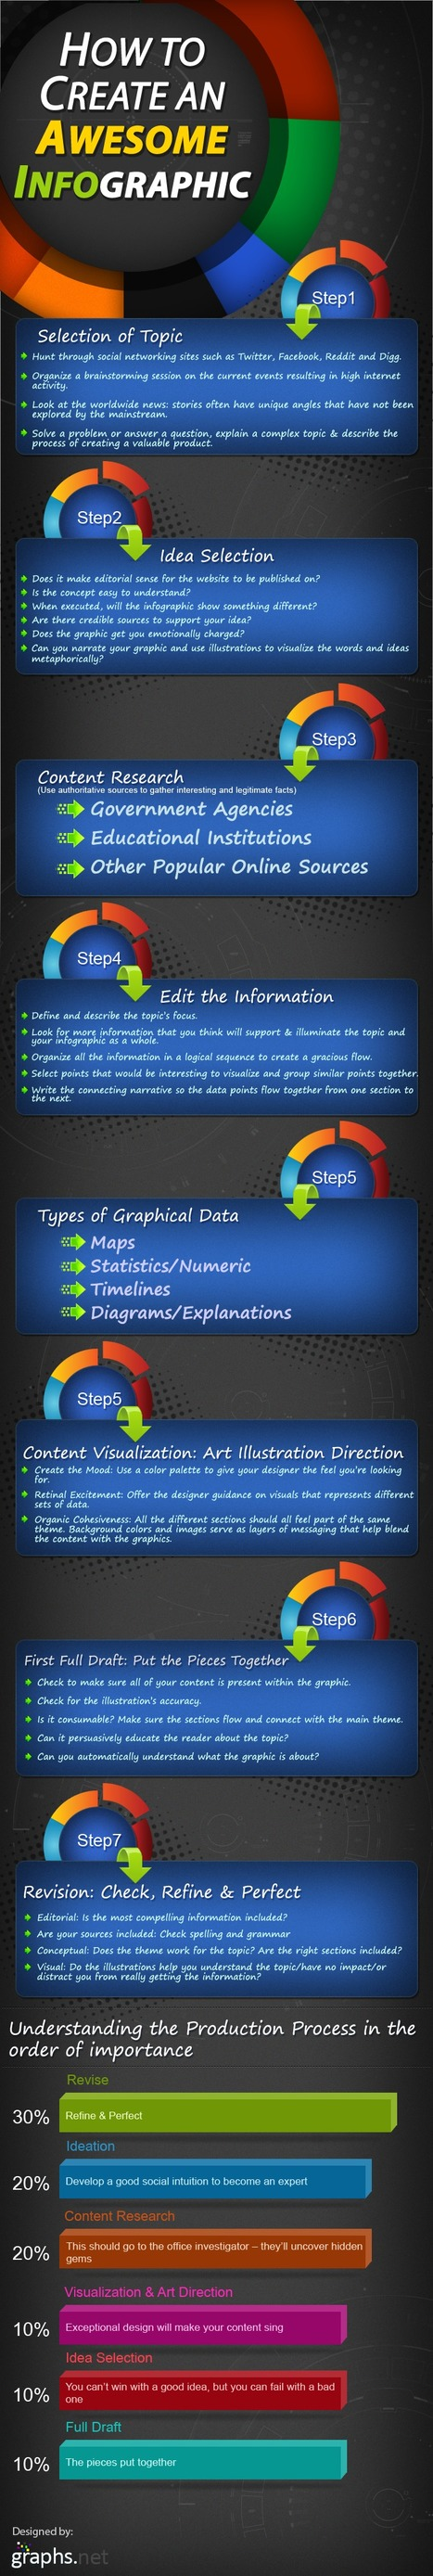 7 Key Steps to Creating an Awesome Infographic | Digital-News on Scoop.it today | Scoop.it